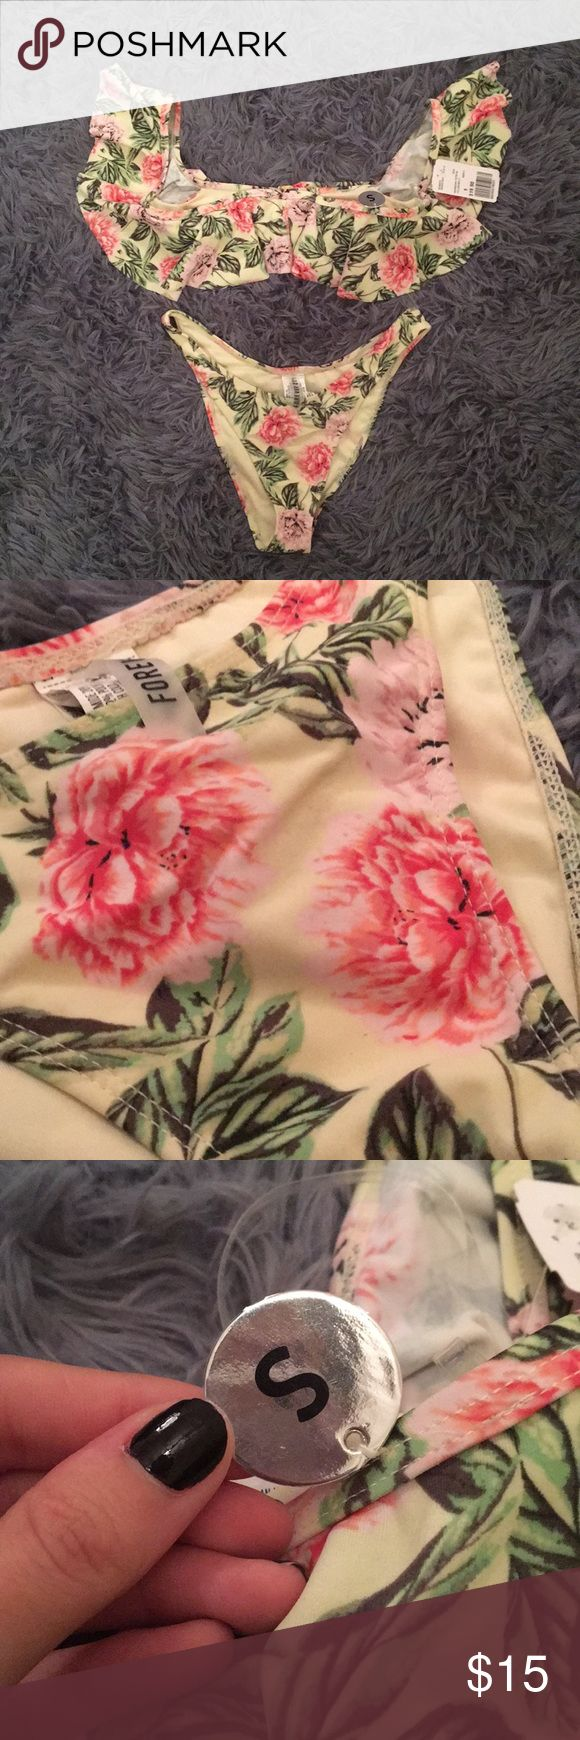 Forever 21 off the shoulder floral bathing suit. Forever 21 off the shoulder floral pattern bathing suit. Top and bottom both size small. Forever 21 Swim Bikinis